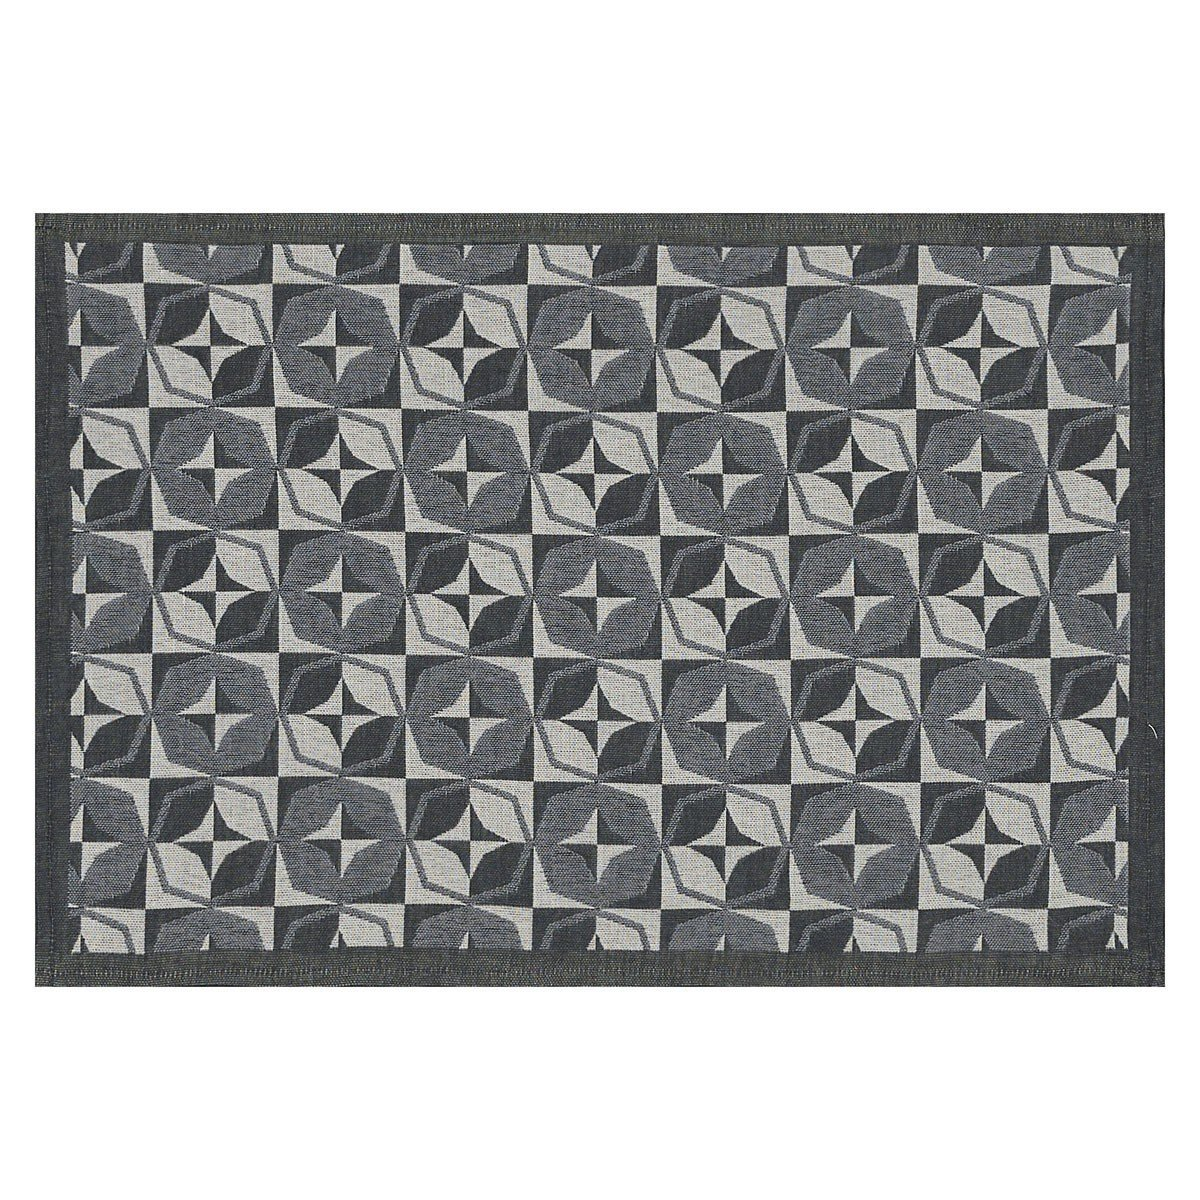 Bistronome Jules Gray Placemats